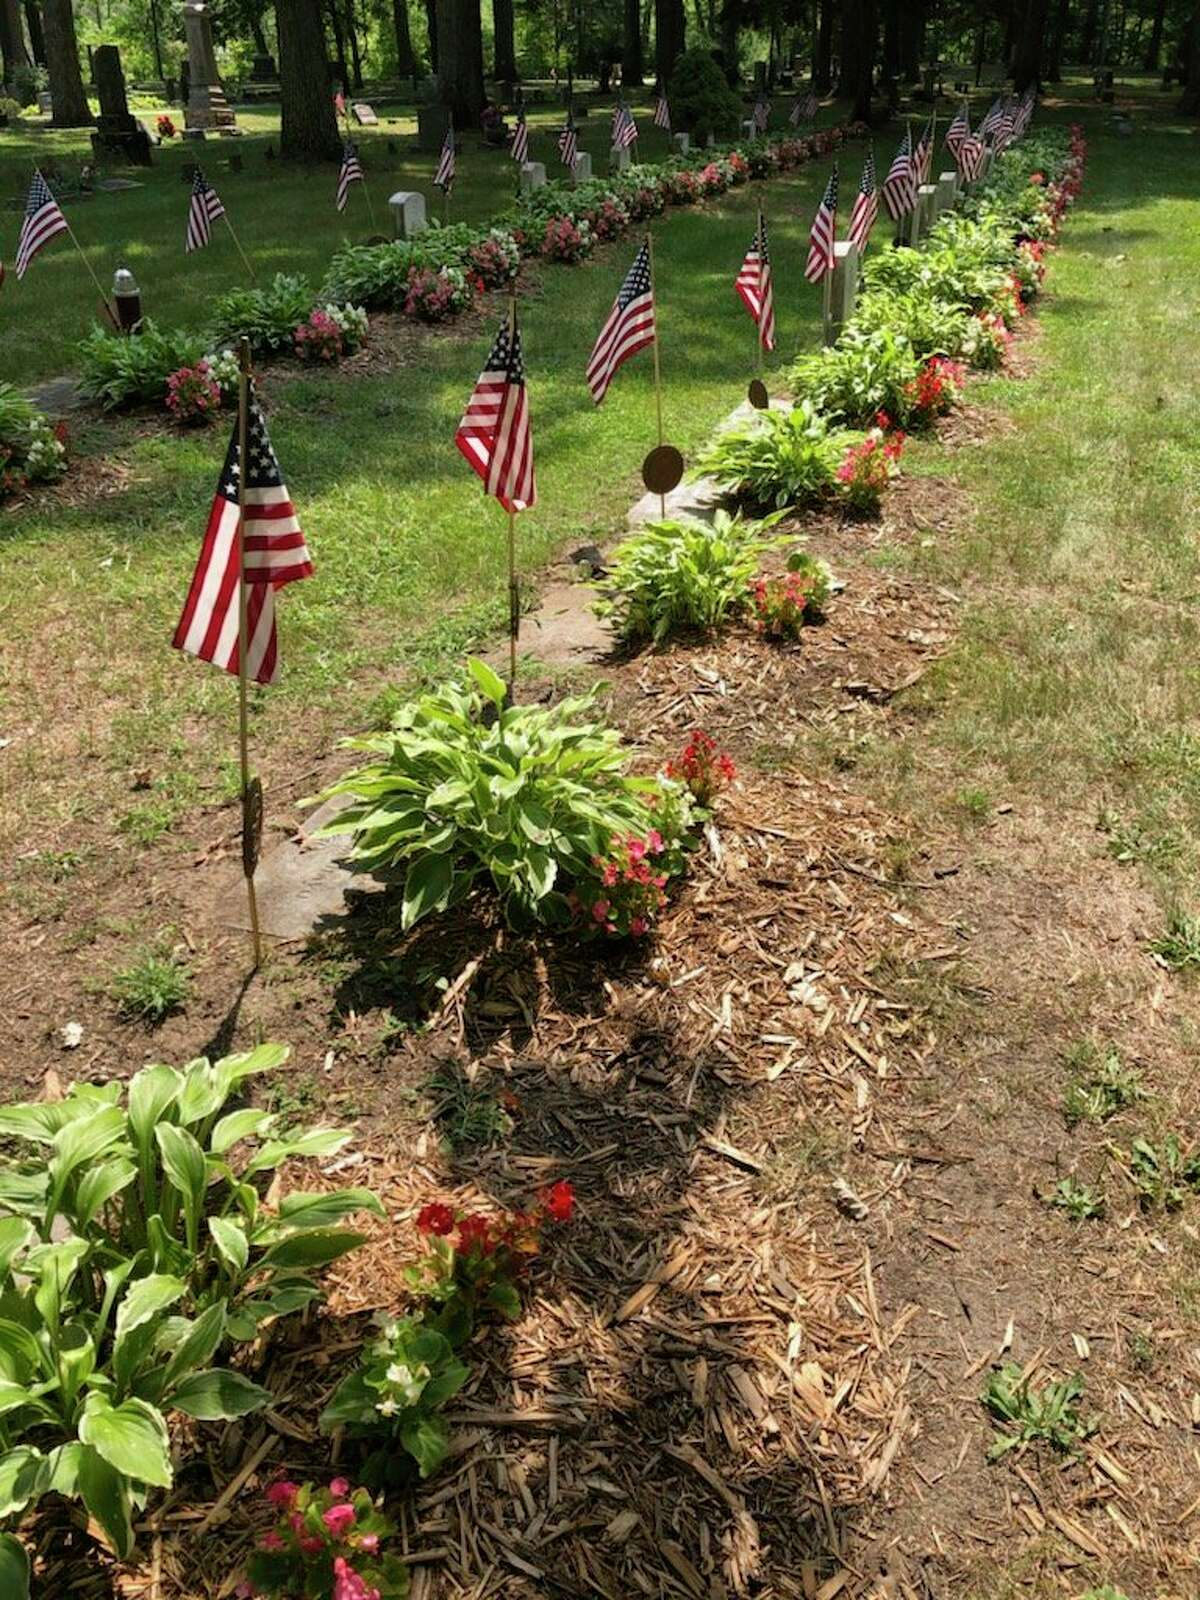 Proceeds from Chemical City Garden Club's annual plant sale will go towards purchasing plants and other items needed to spruce up veterans' graves in Midland. (Photo provided)